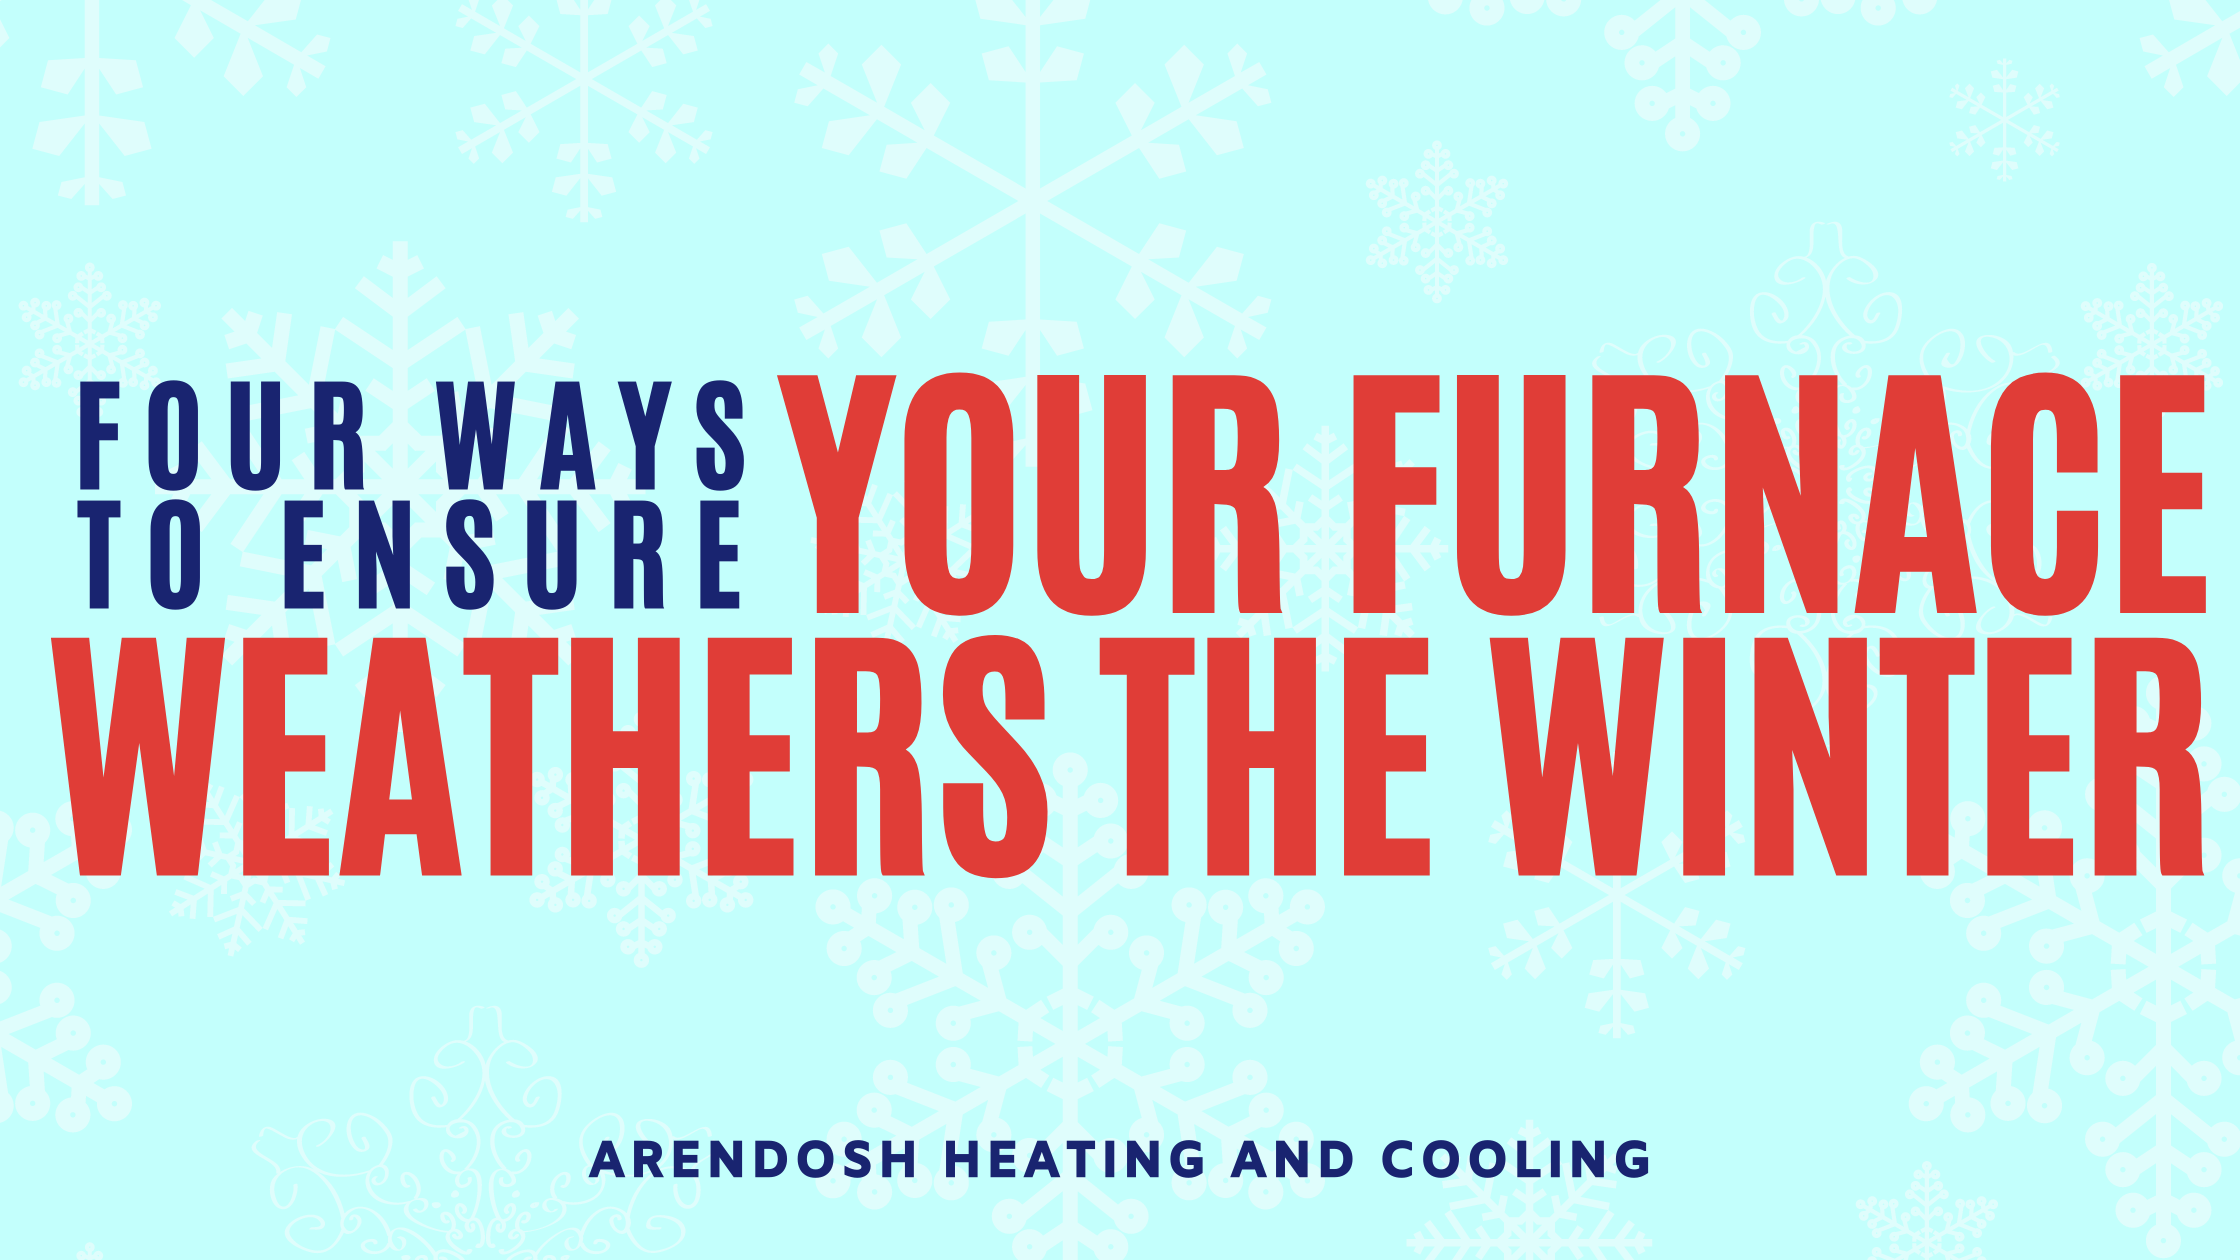 Arendosh_Ensure Your Furnace Weathers the Winter